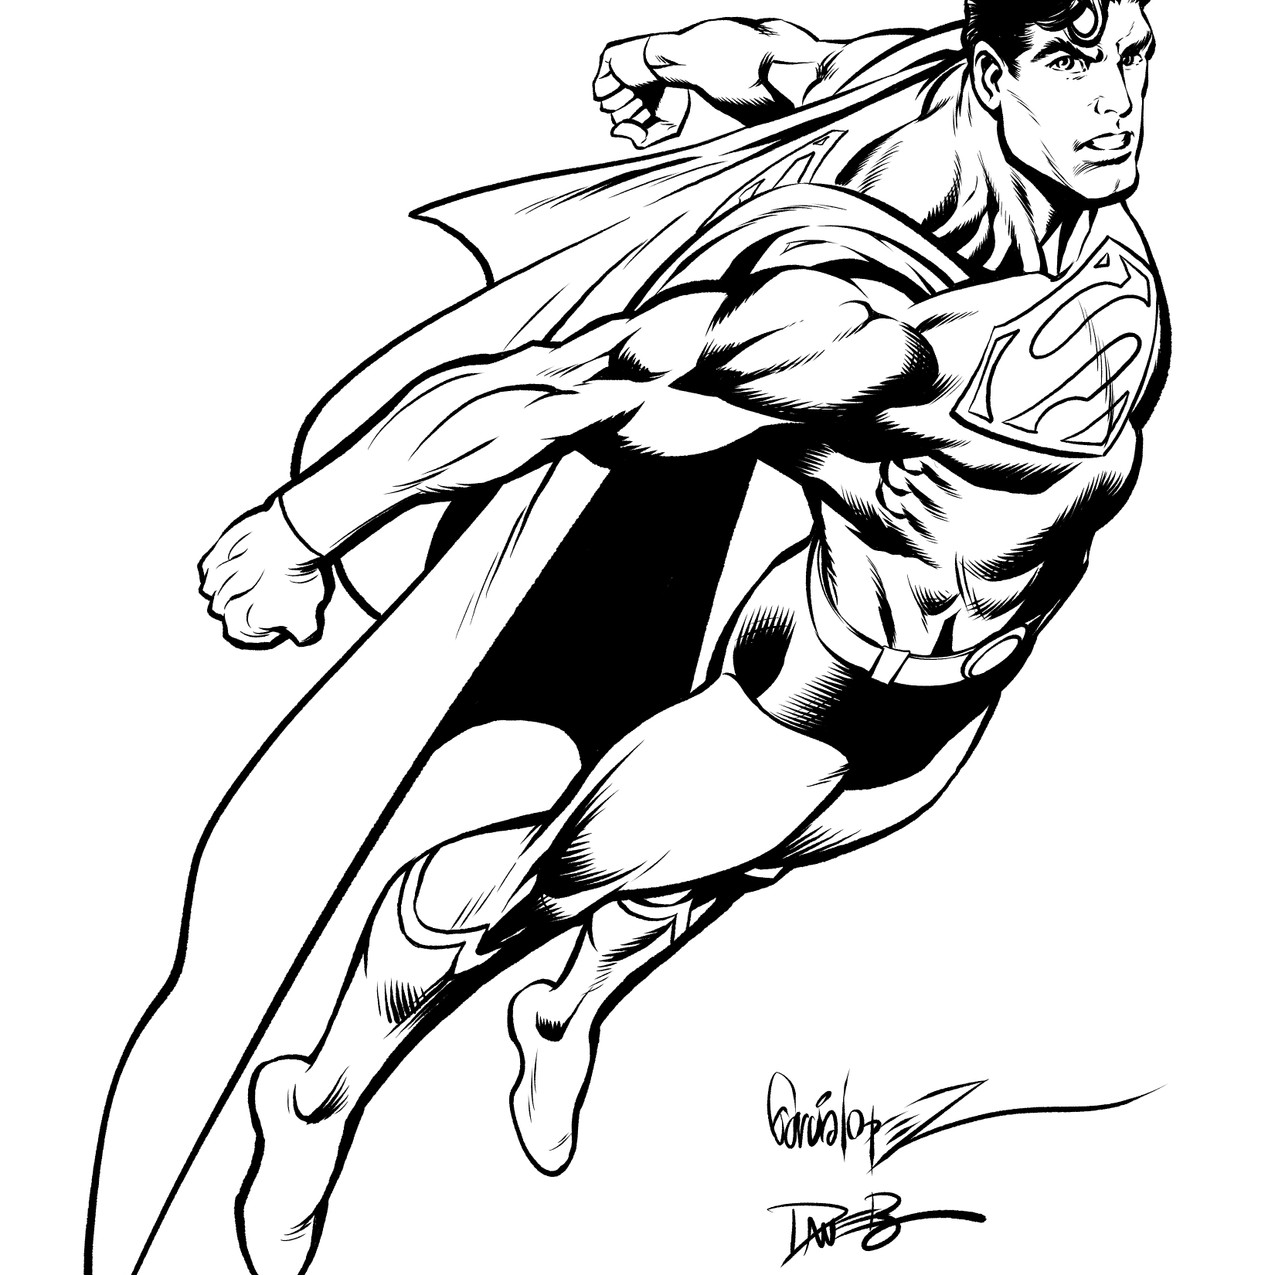 Superman inks by Dave Beaty